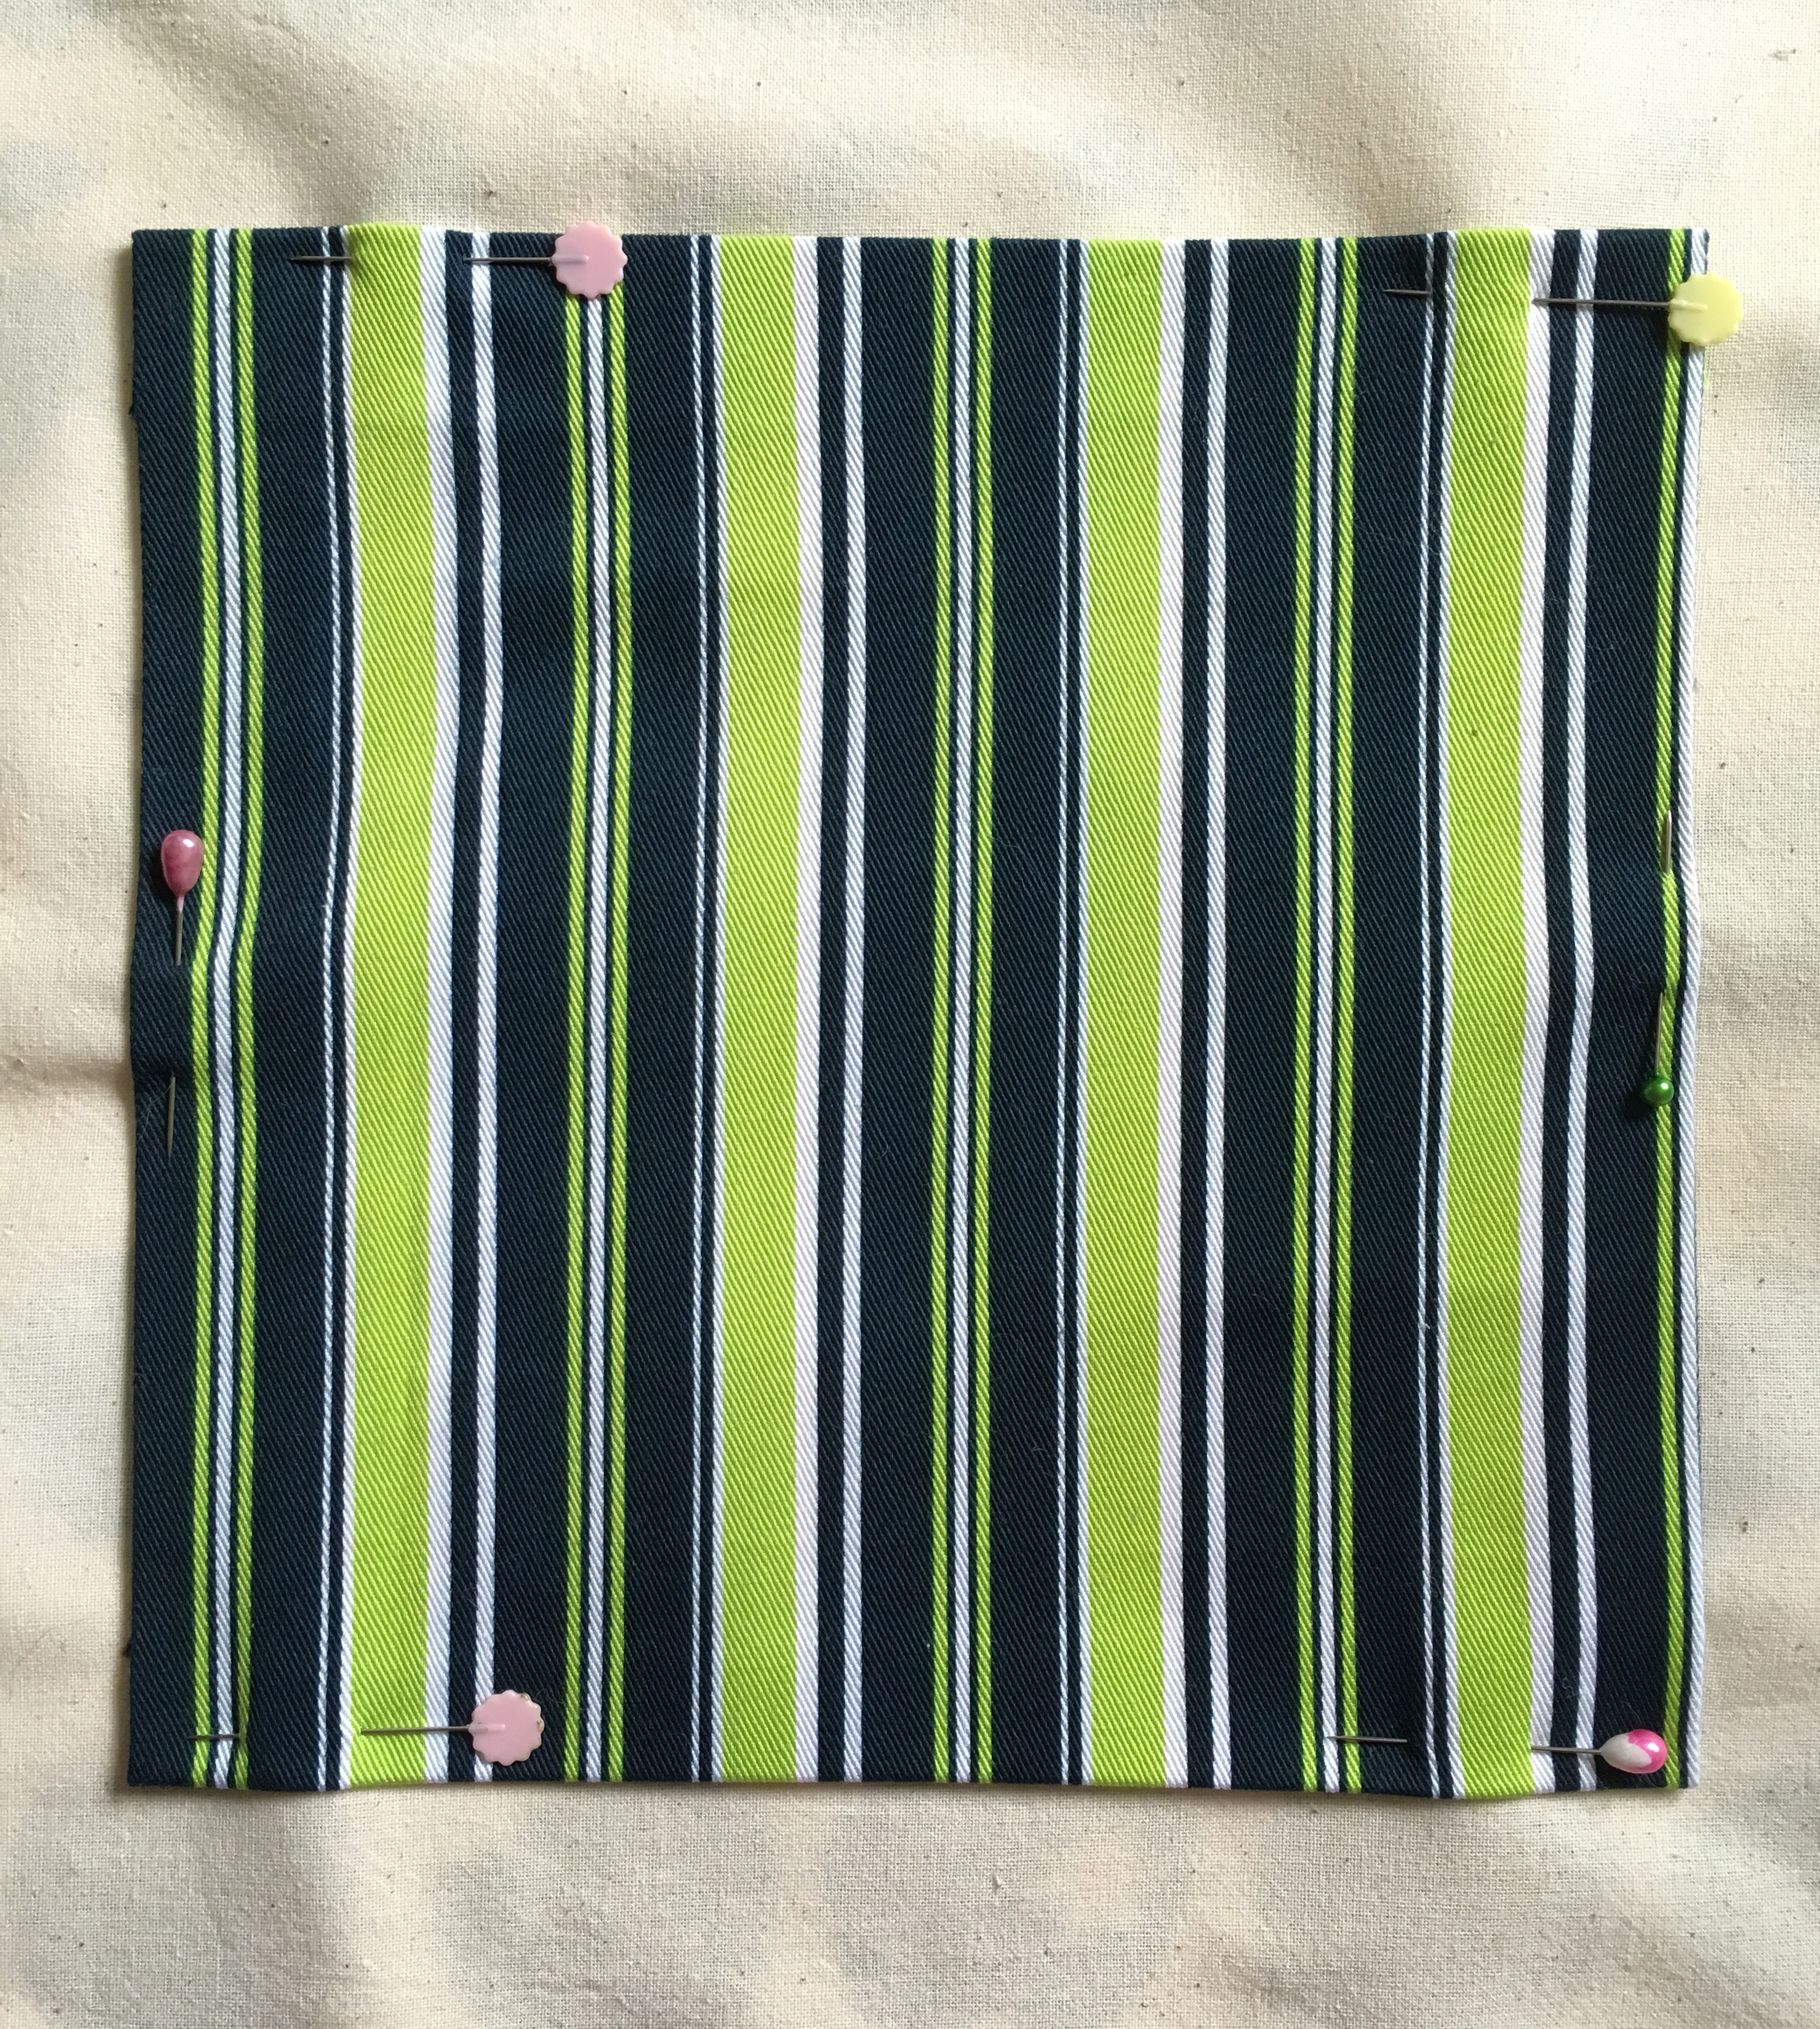 A square of navy blue, lime and white striped twill cotton fabric pinned to a background of unbleached calico.